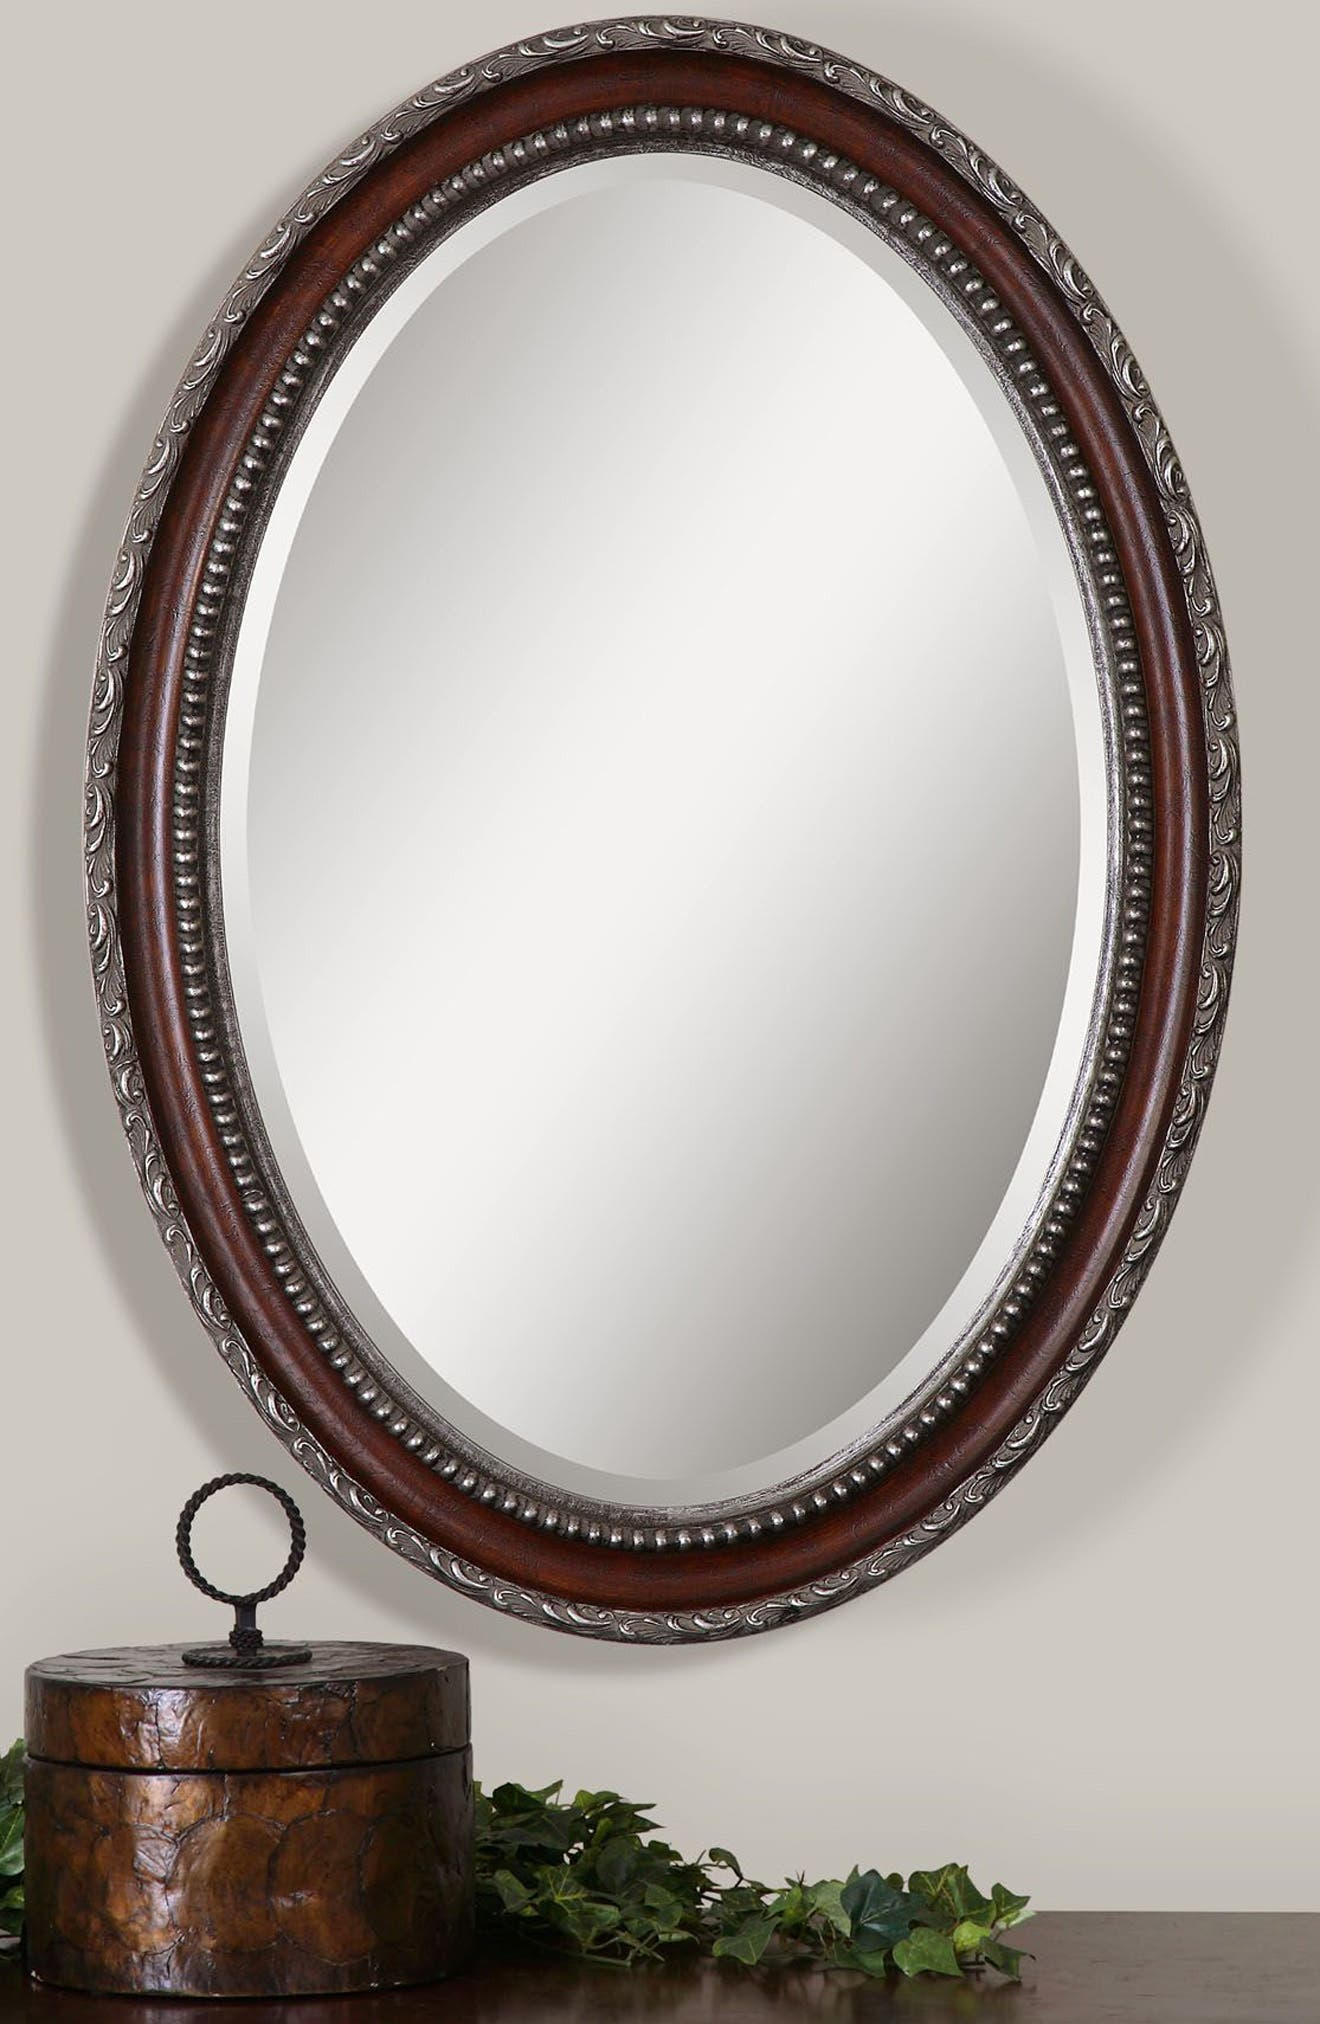 Montrose Oval Wall Mirror,                             Alternate thumbnail 2, color,                             200